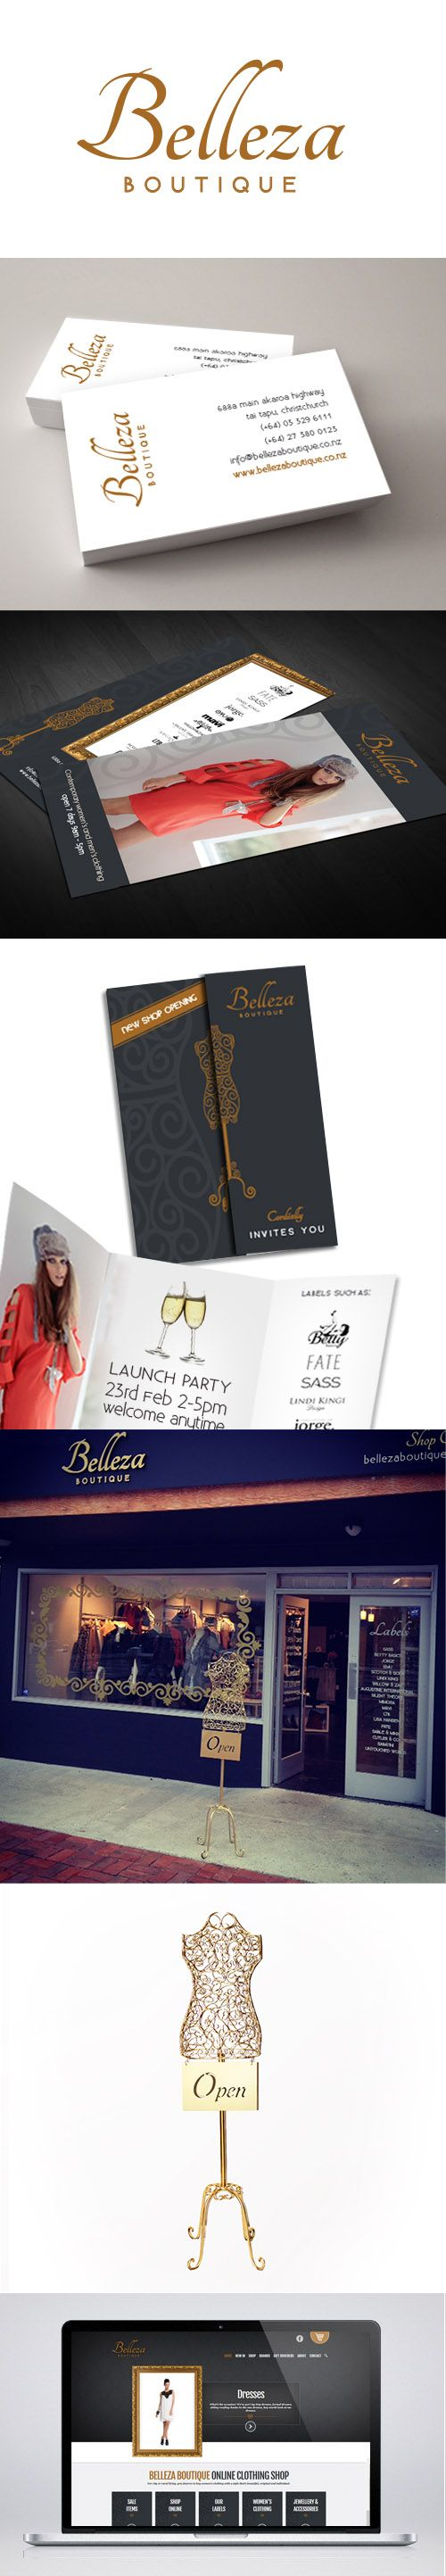 Belleza Boutique branding, signage and website design